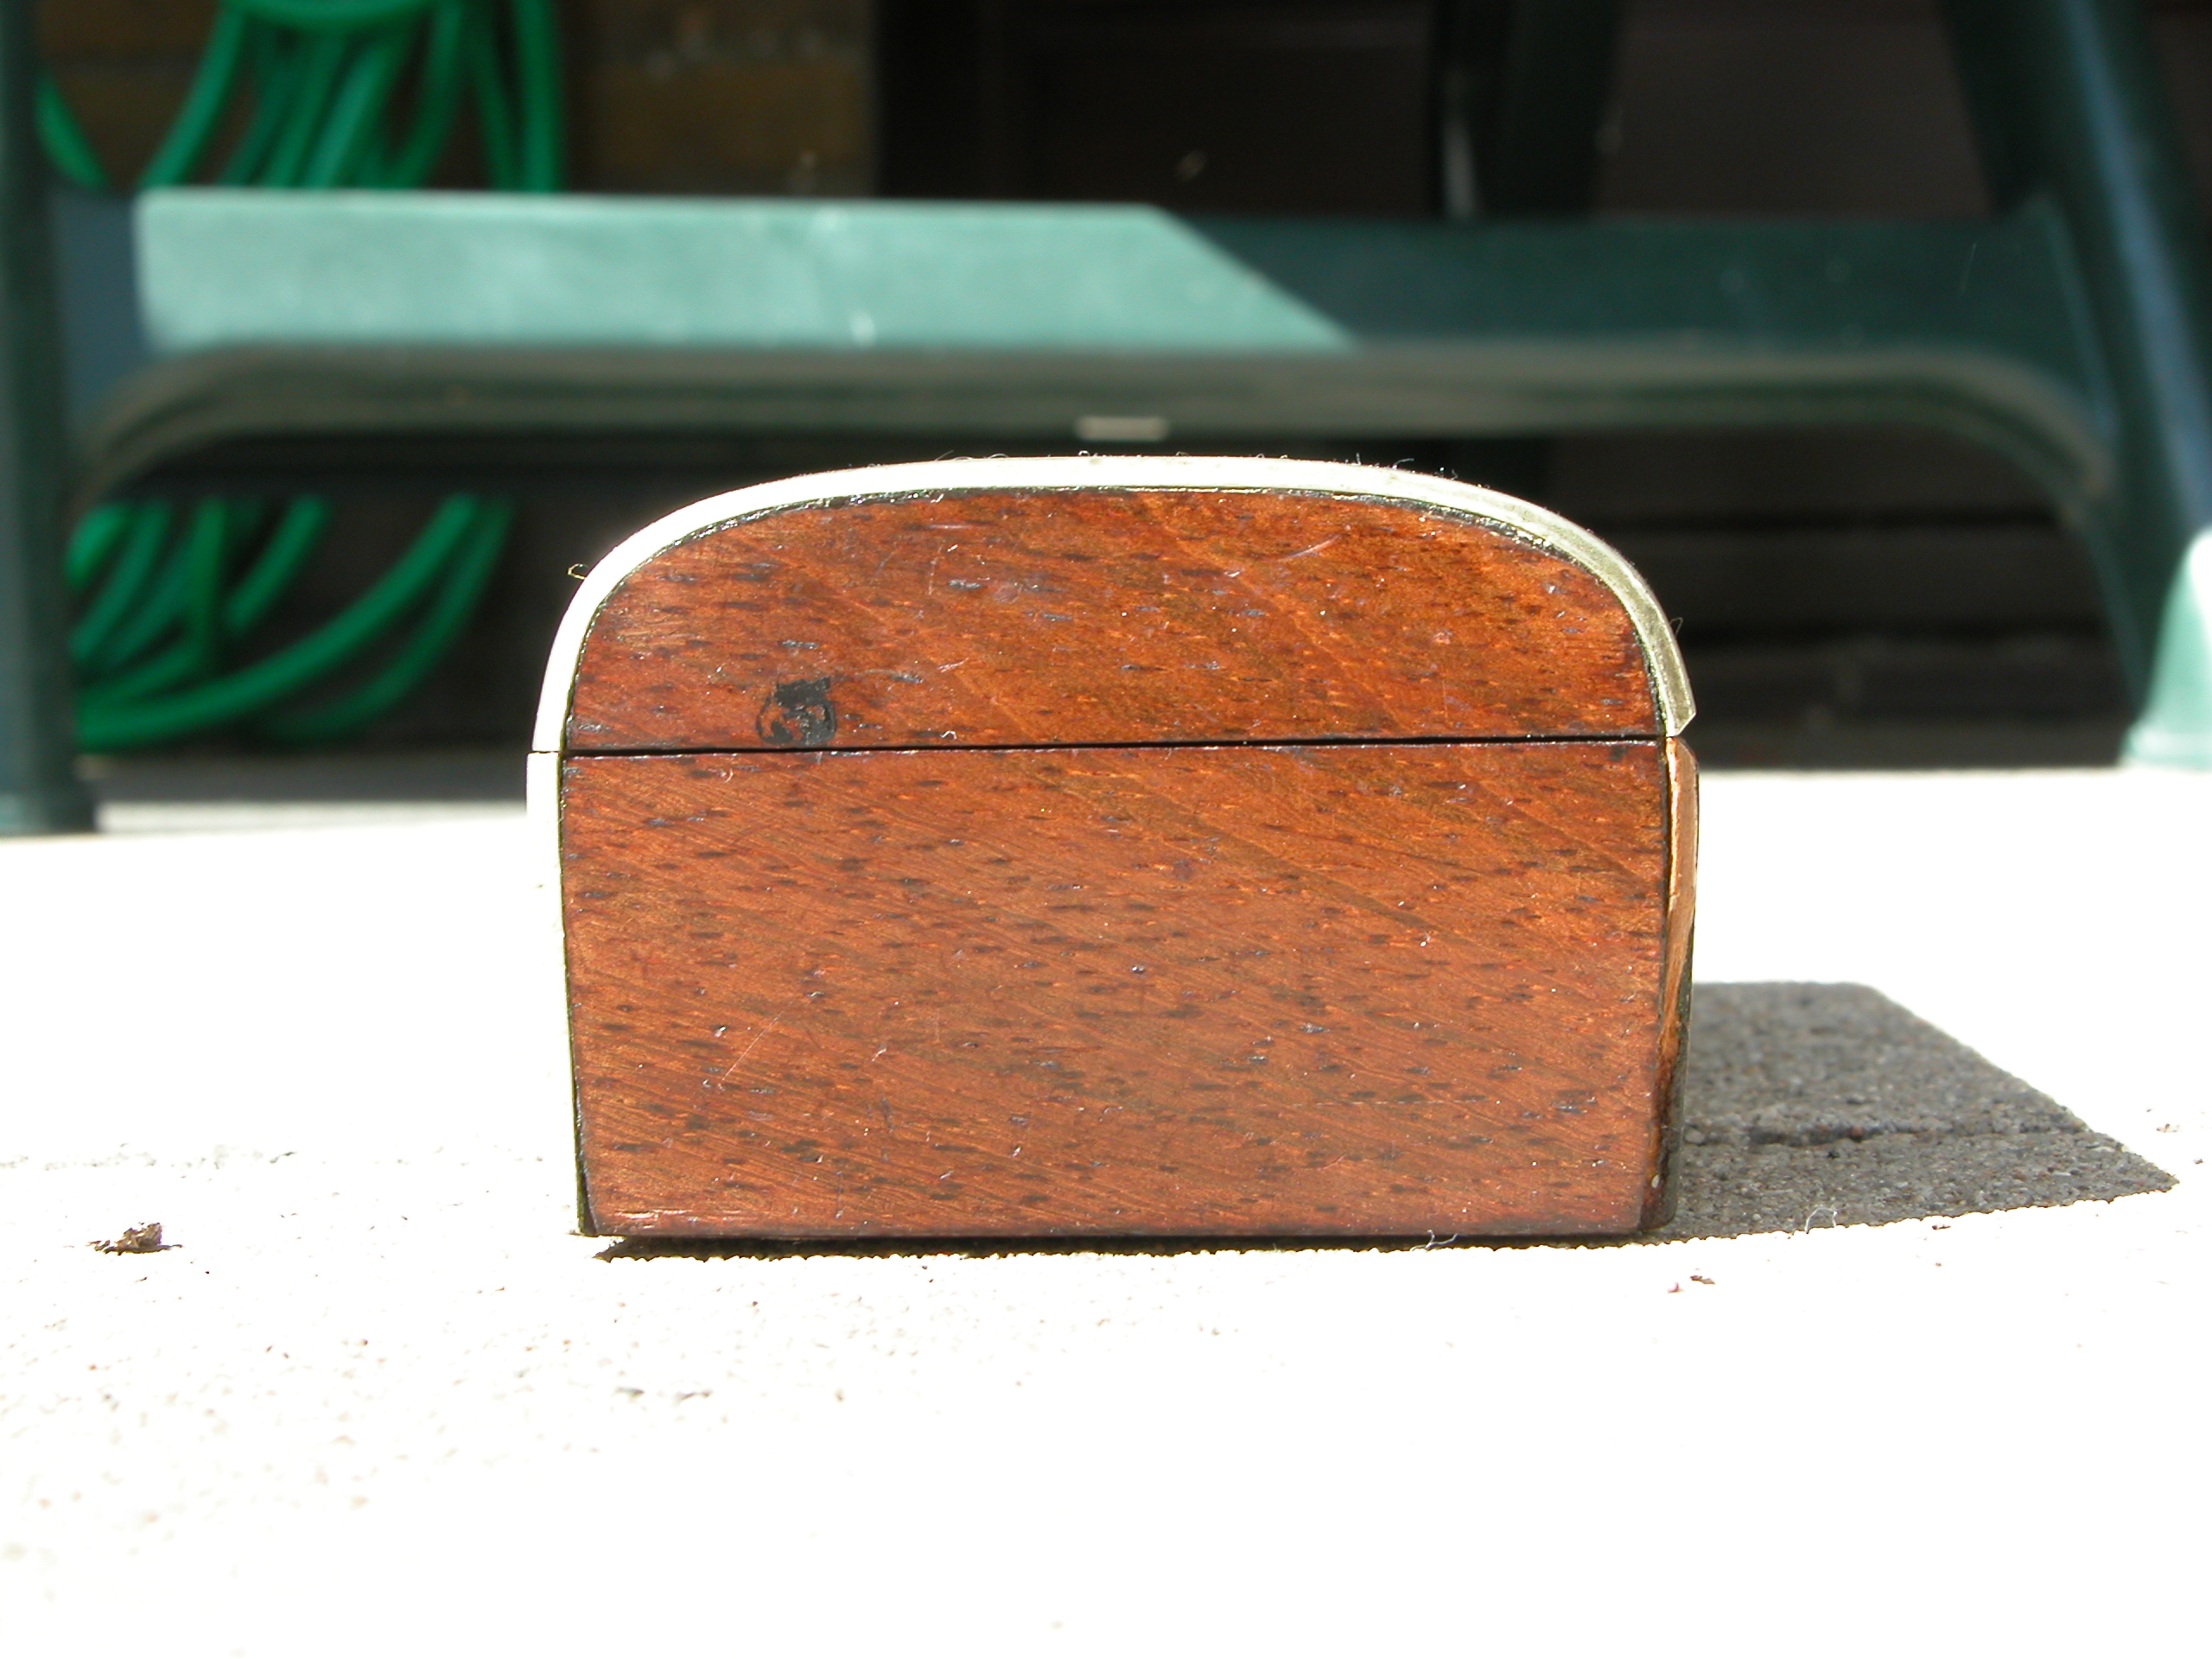 side panel wooden box wood small hard rounded edges brown smooth